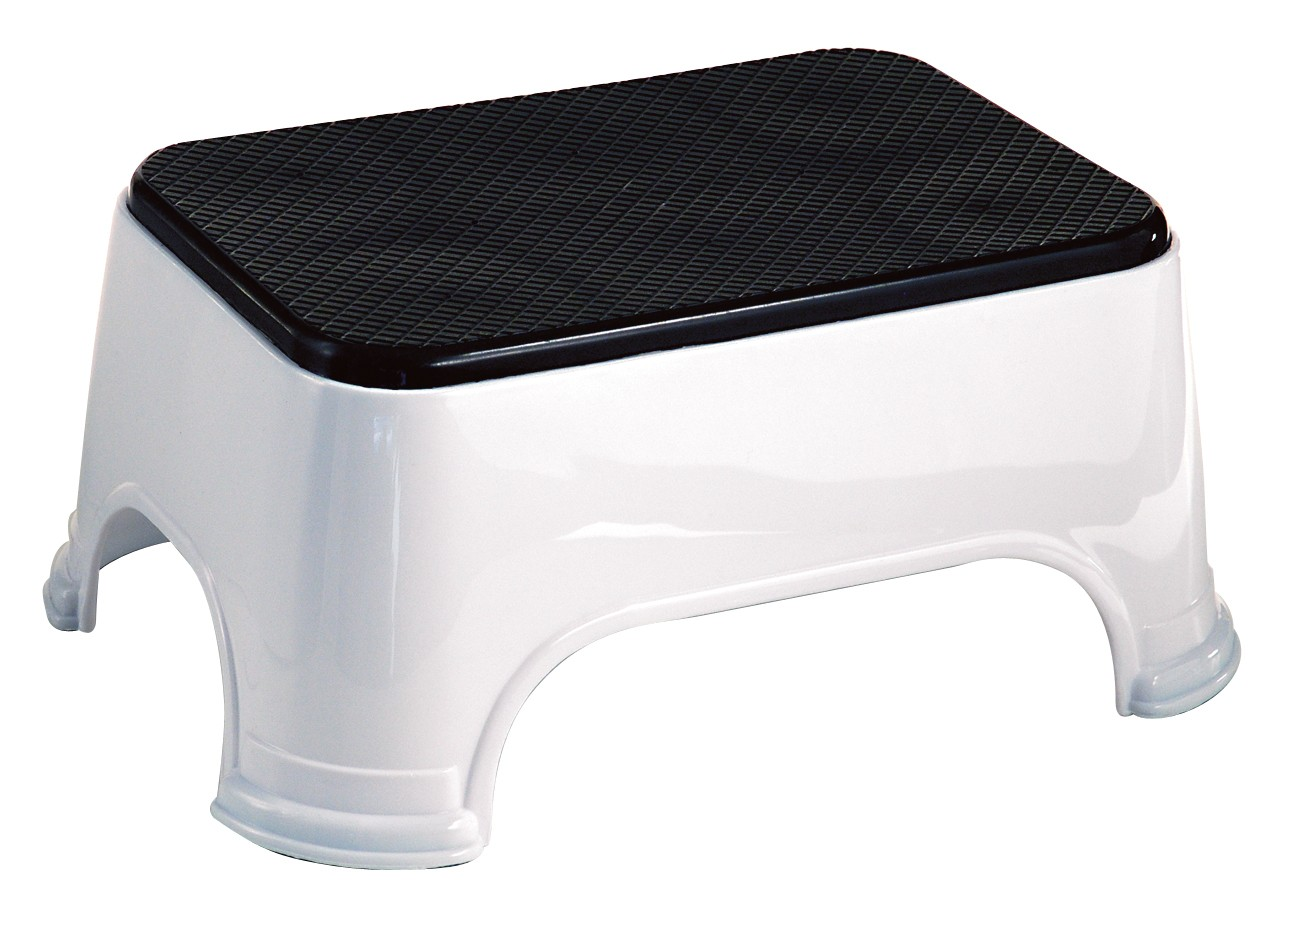 sc 1 st  Storage Box & Step Stool Non-Slip White/Black from Storage Box islam-shia.org